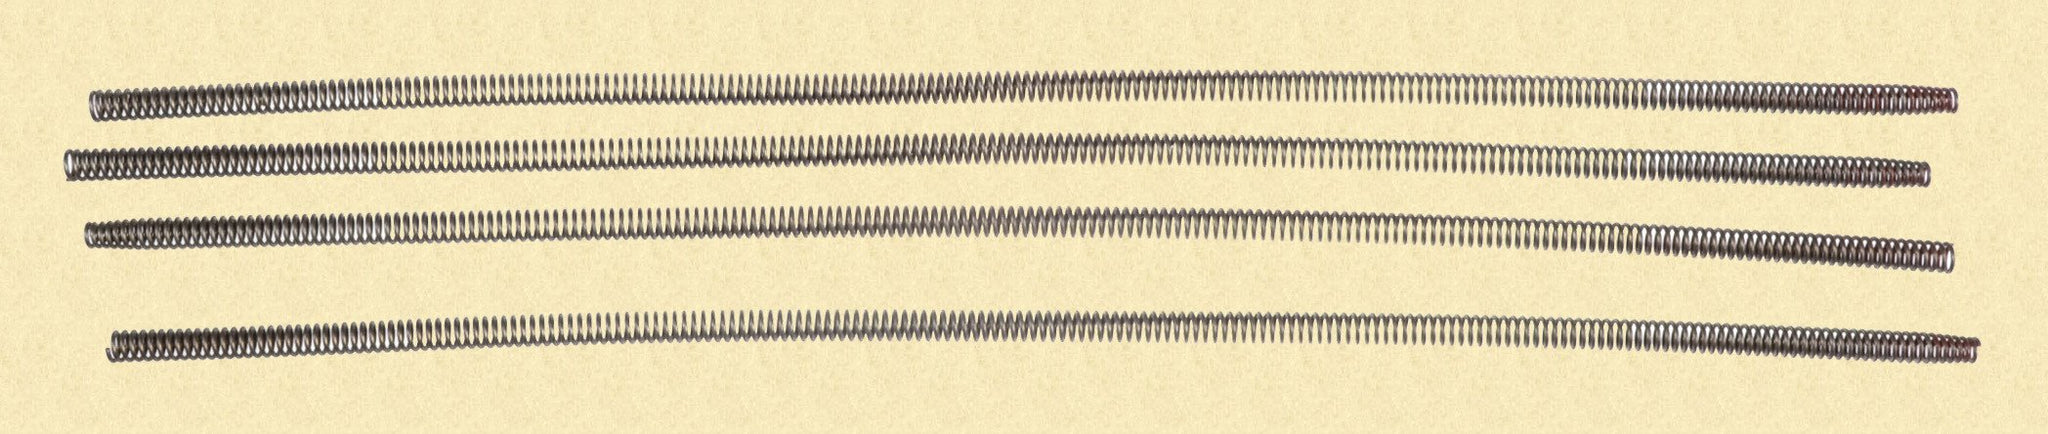 USGI M1 RIFLE OPERATING ROD SPRING